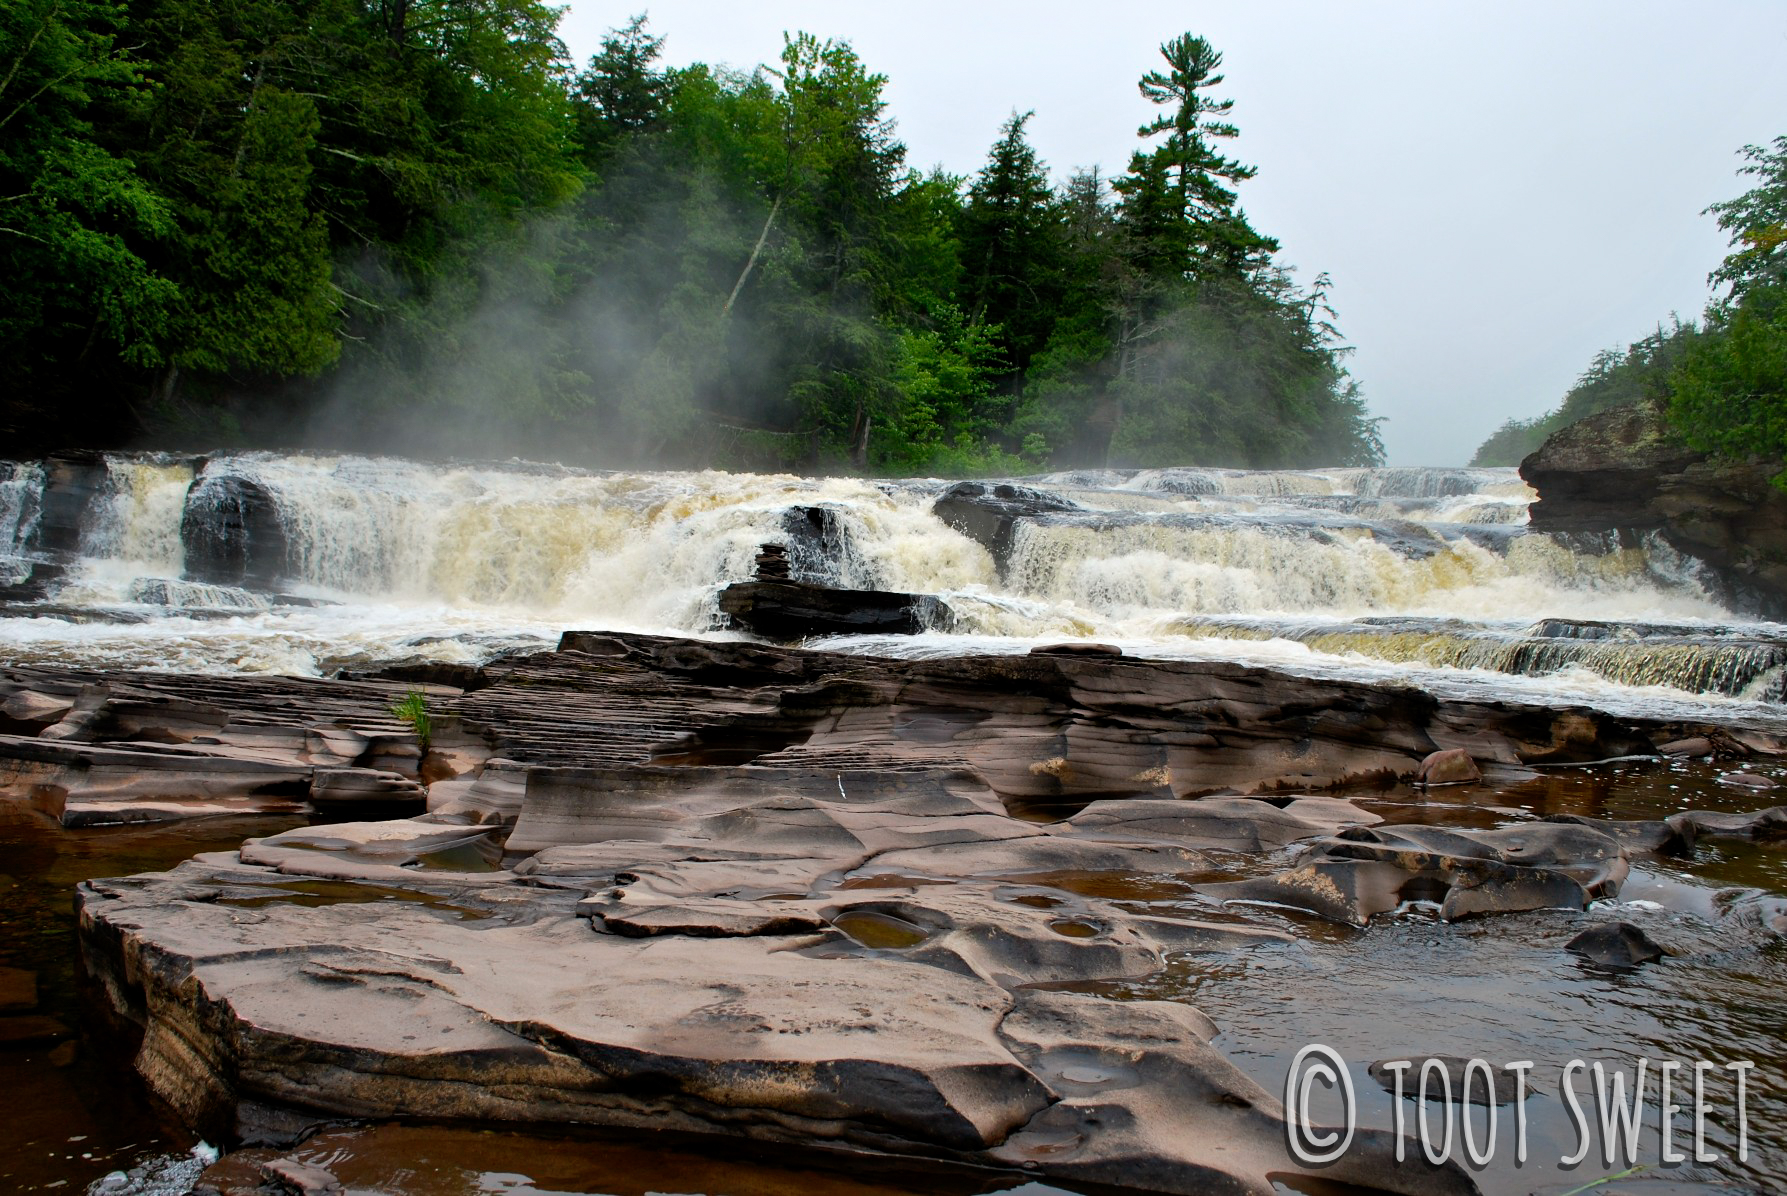 The Presque Isle River, from my last visit to Porcupine Mountains!